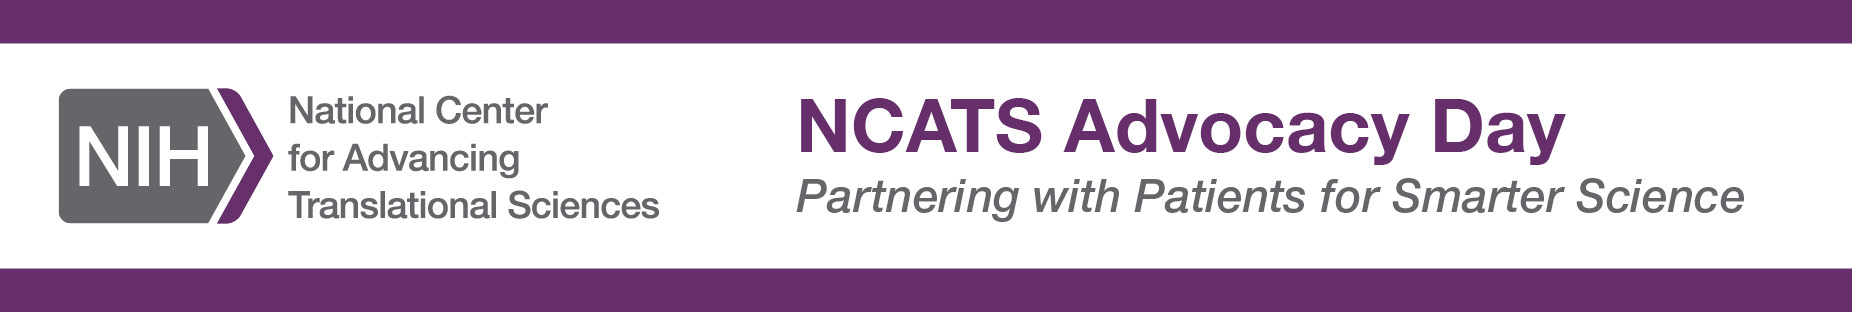 NCATS Advocacy Day ― Partnering with Patients for Smarter Science